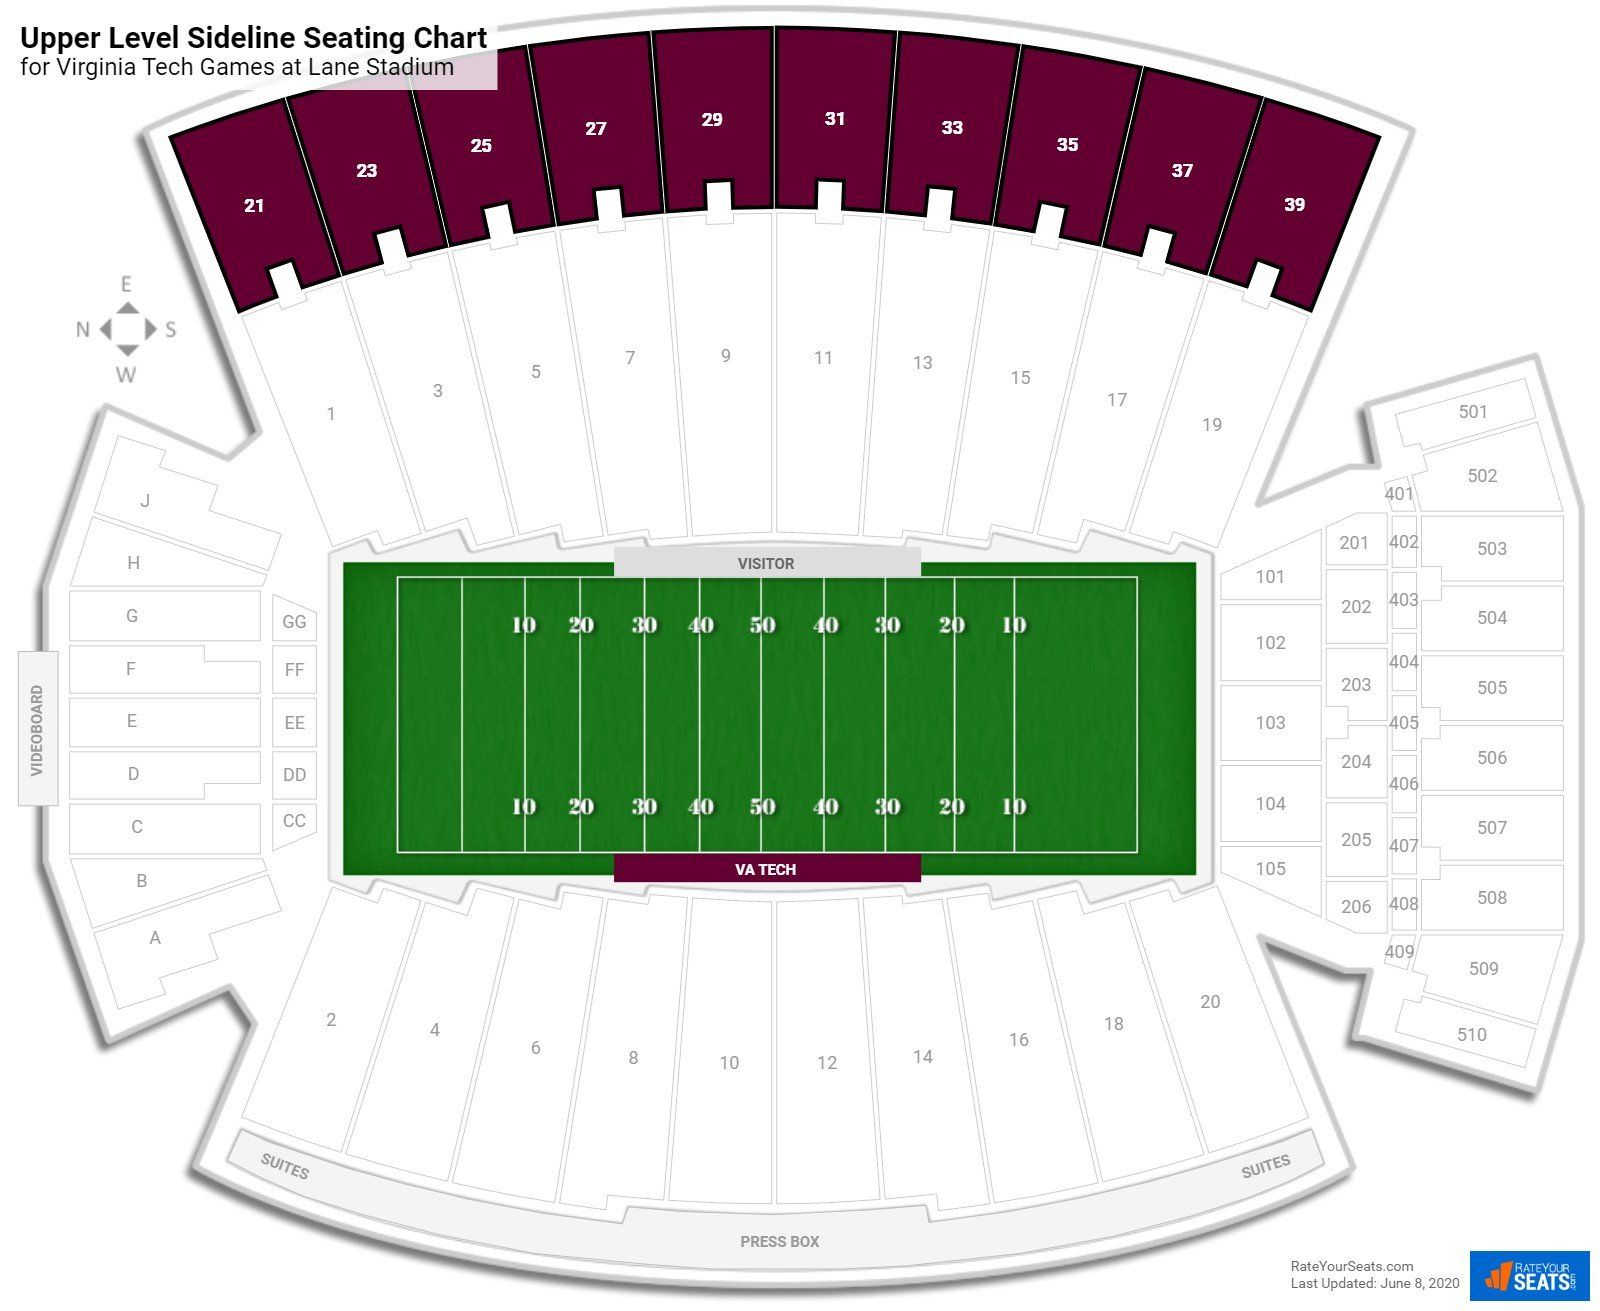 Lane Stadium Upper Level Sideline seating chart